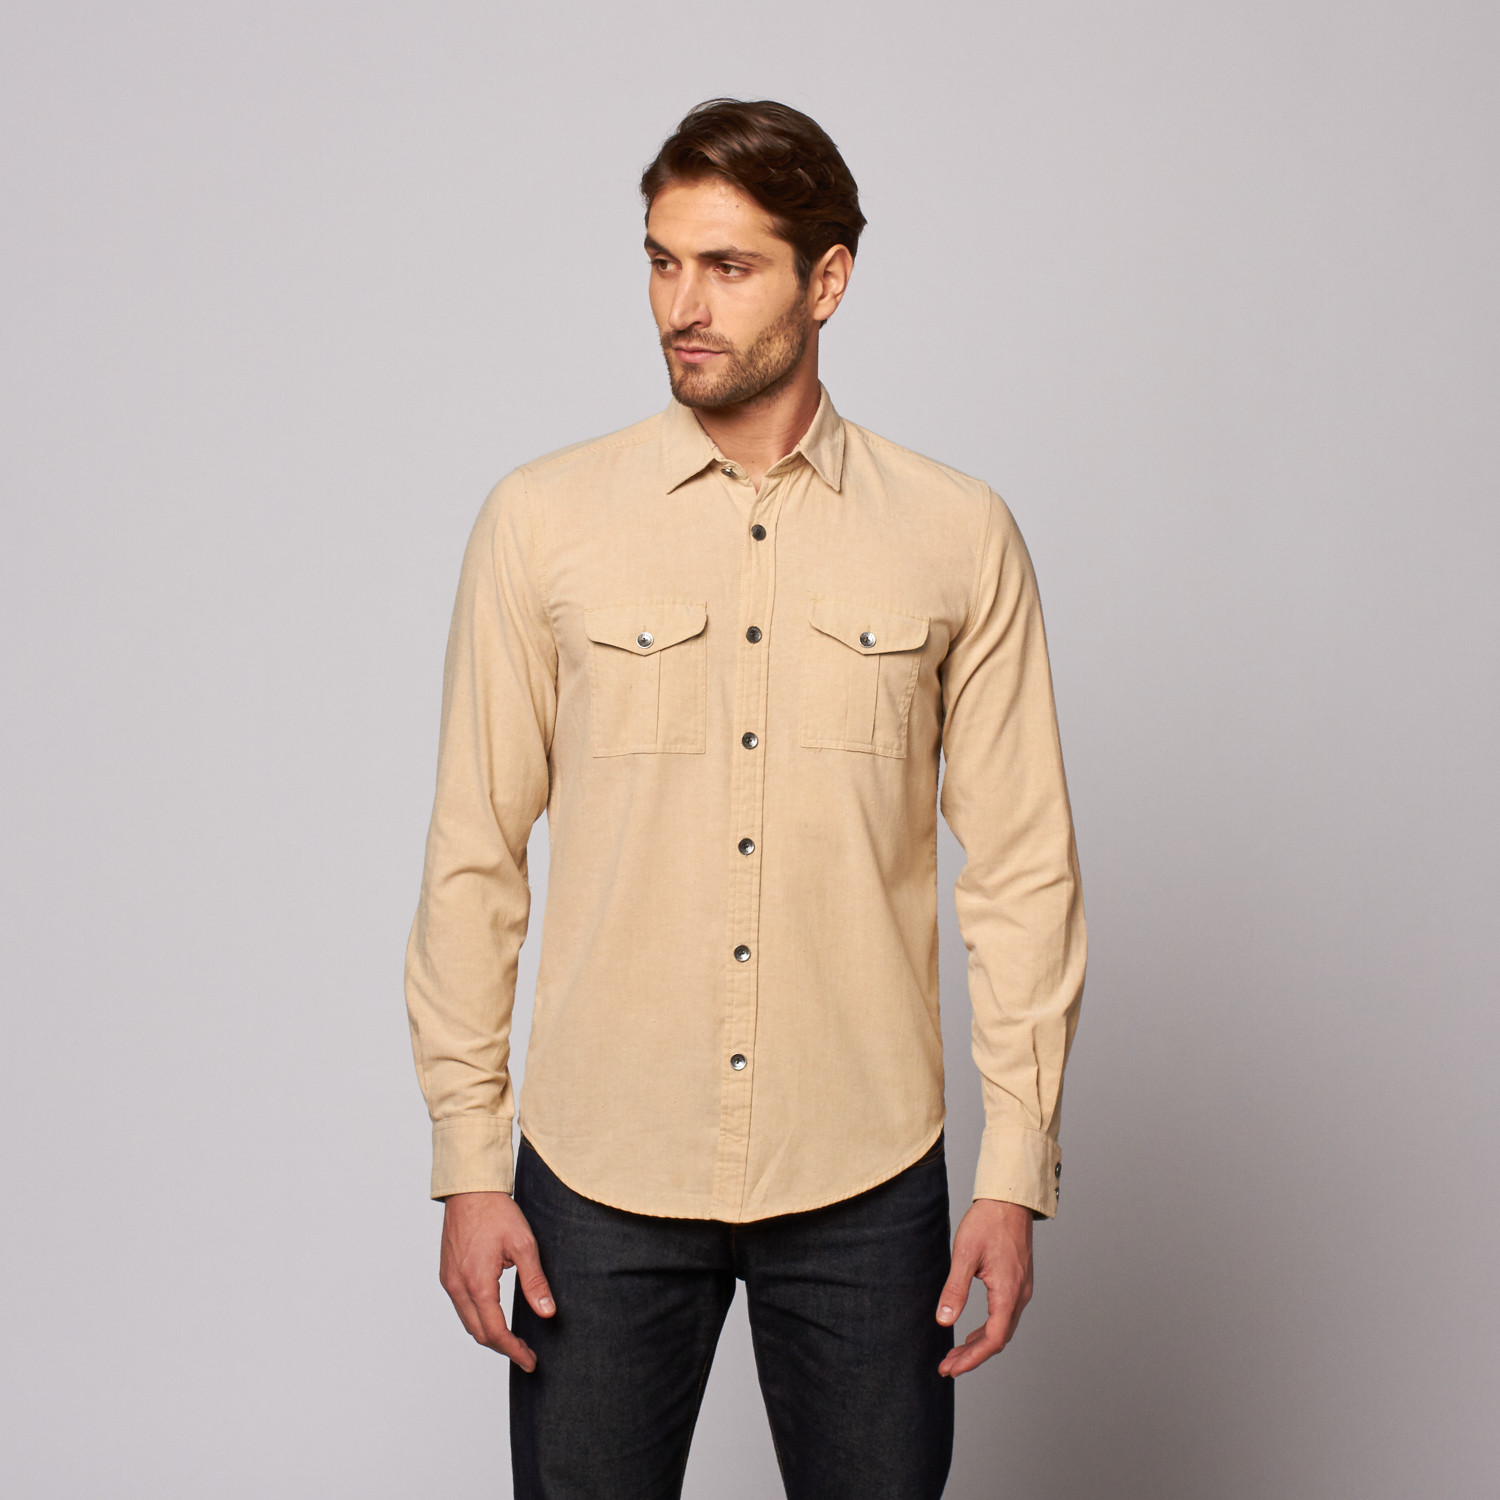 Cadet Button Up Shirt Khaki S Gilded Age Touch Of